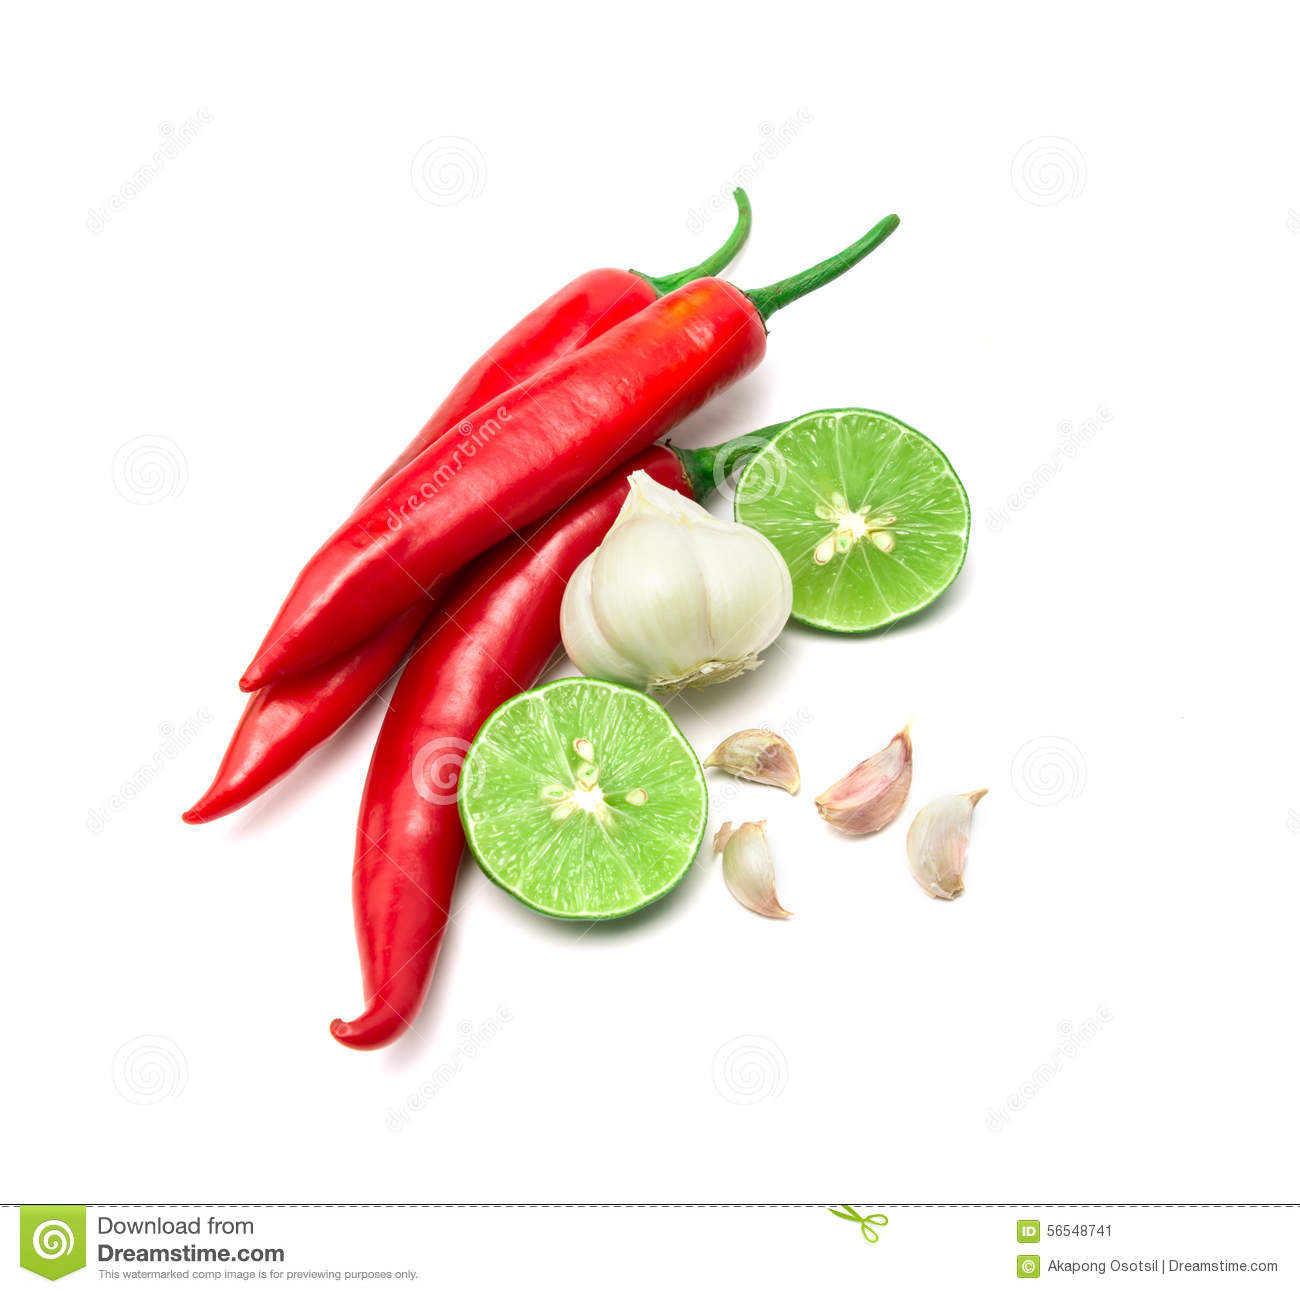 red chili garlic and lime lemon arrange on white background stock image image of cooking. Black Bedroom Furniture Sets. Home Design Ideas